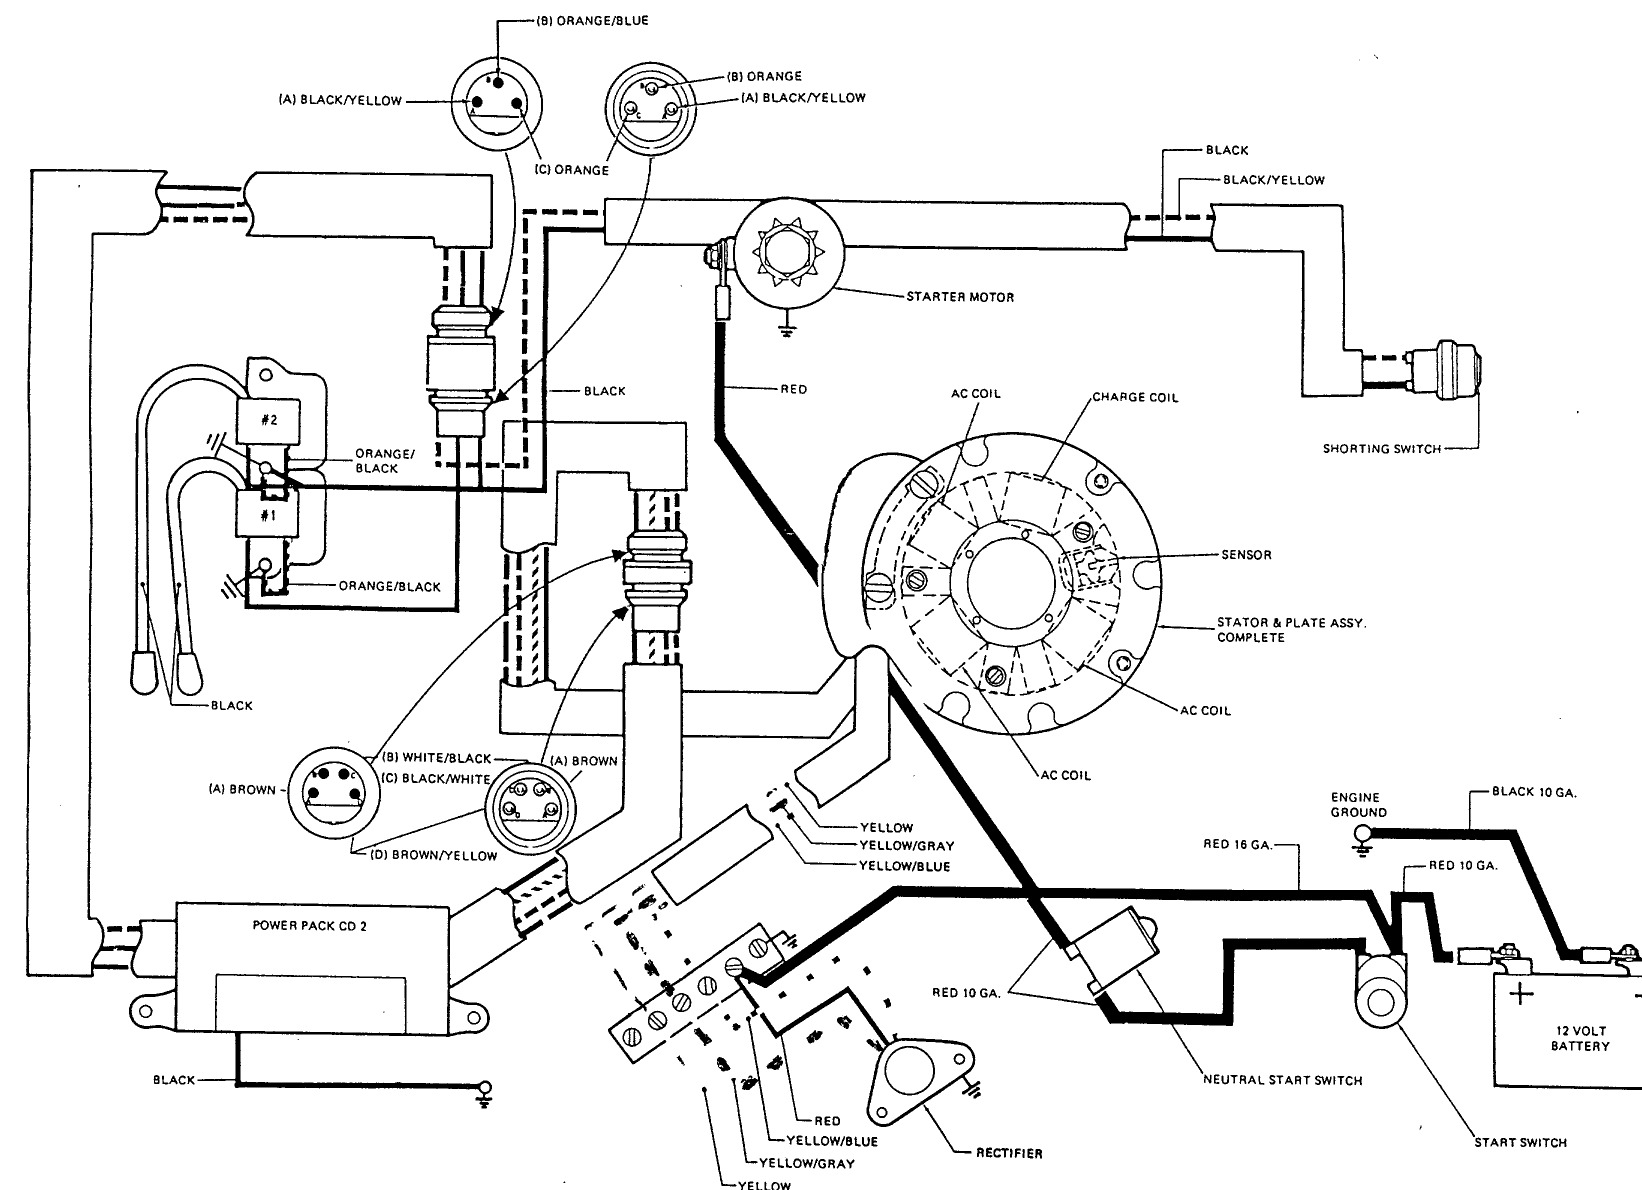 1983 Omc Throttle Control Diagram Guide And Troubleshooting Of Marine Wiring Maintaining Johnson Evinrude 9 1996 Box